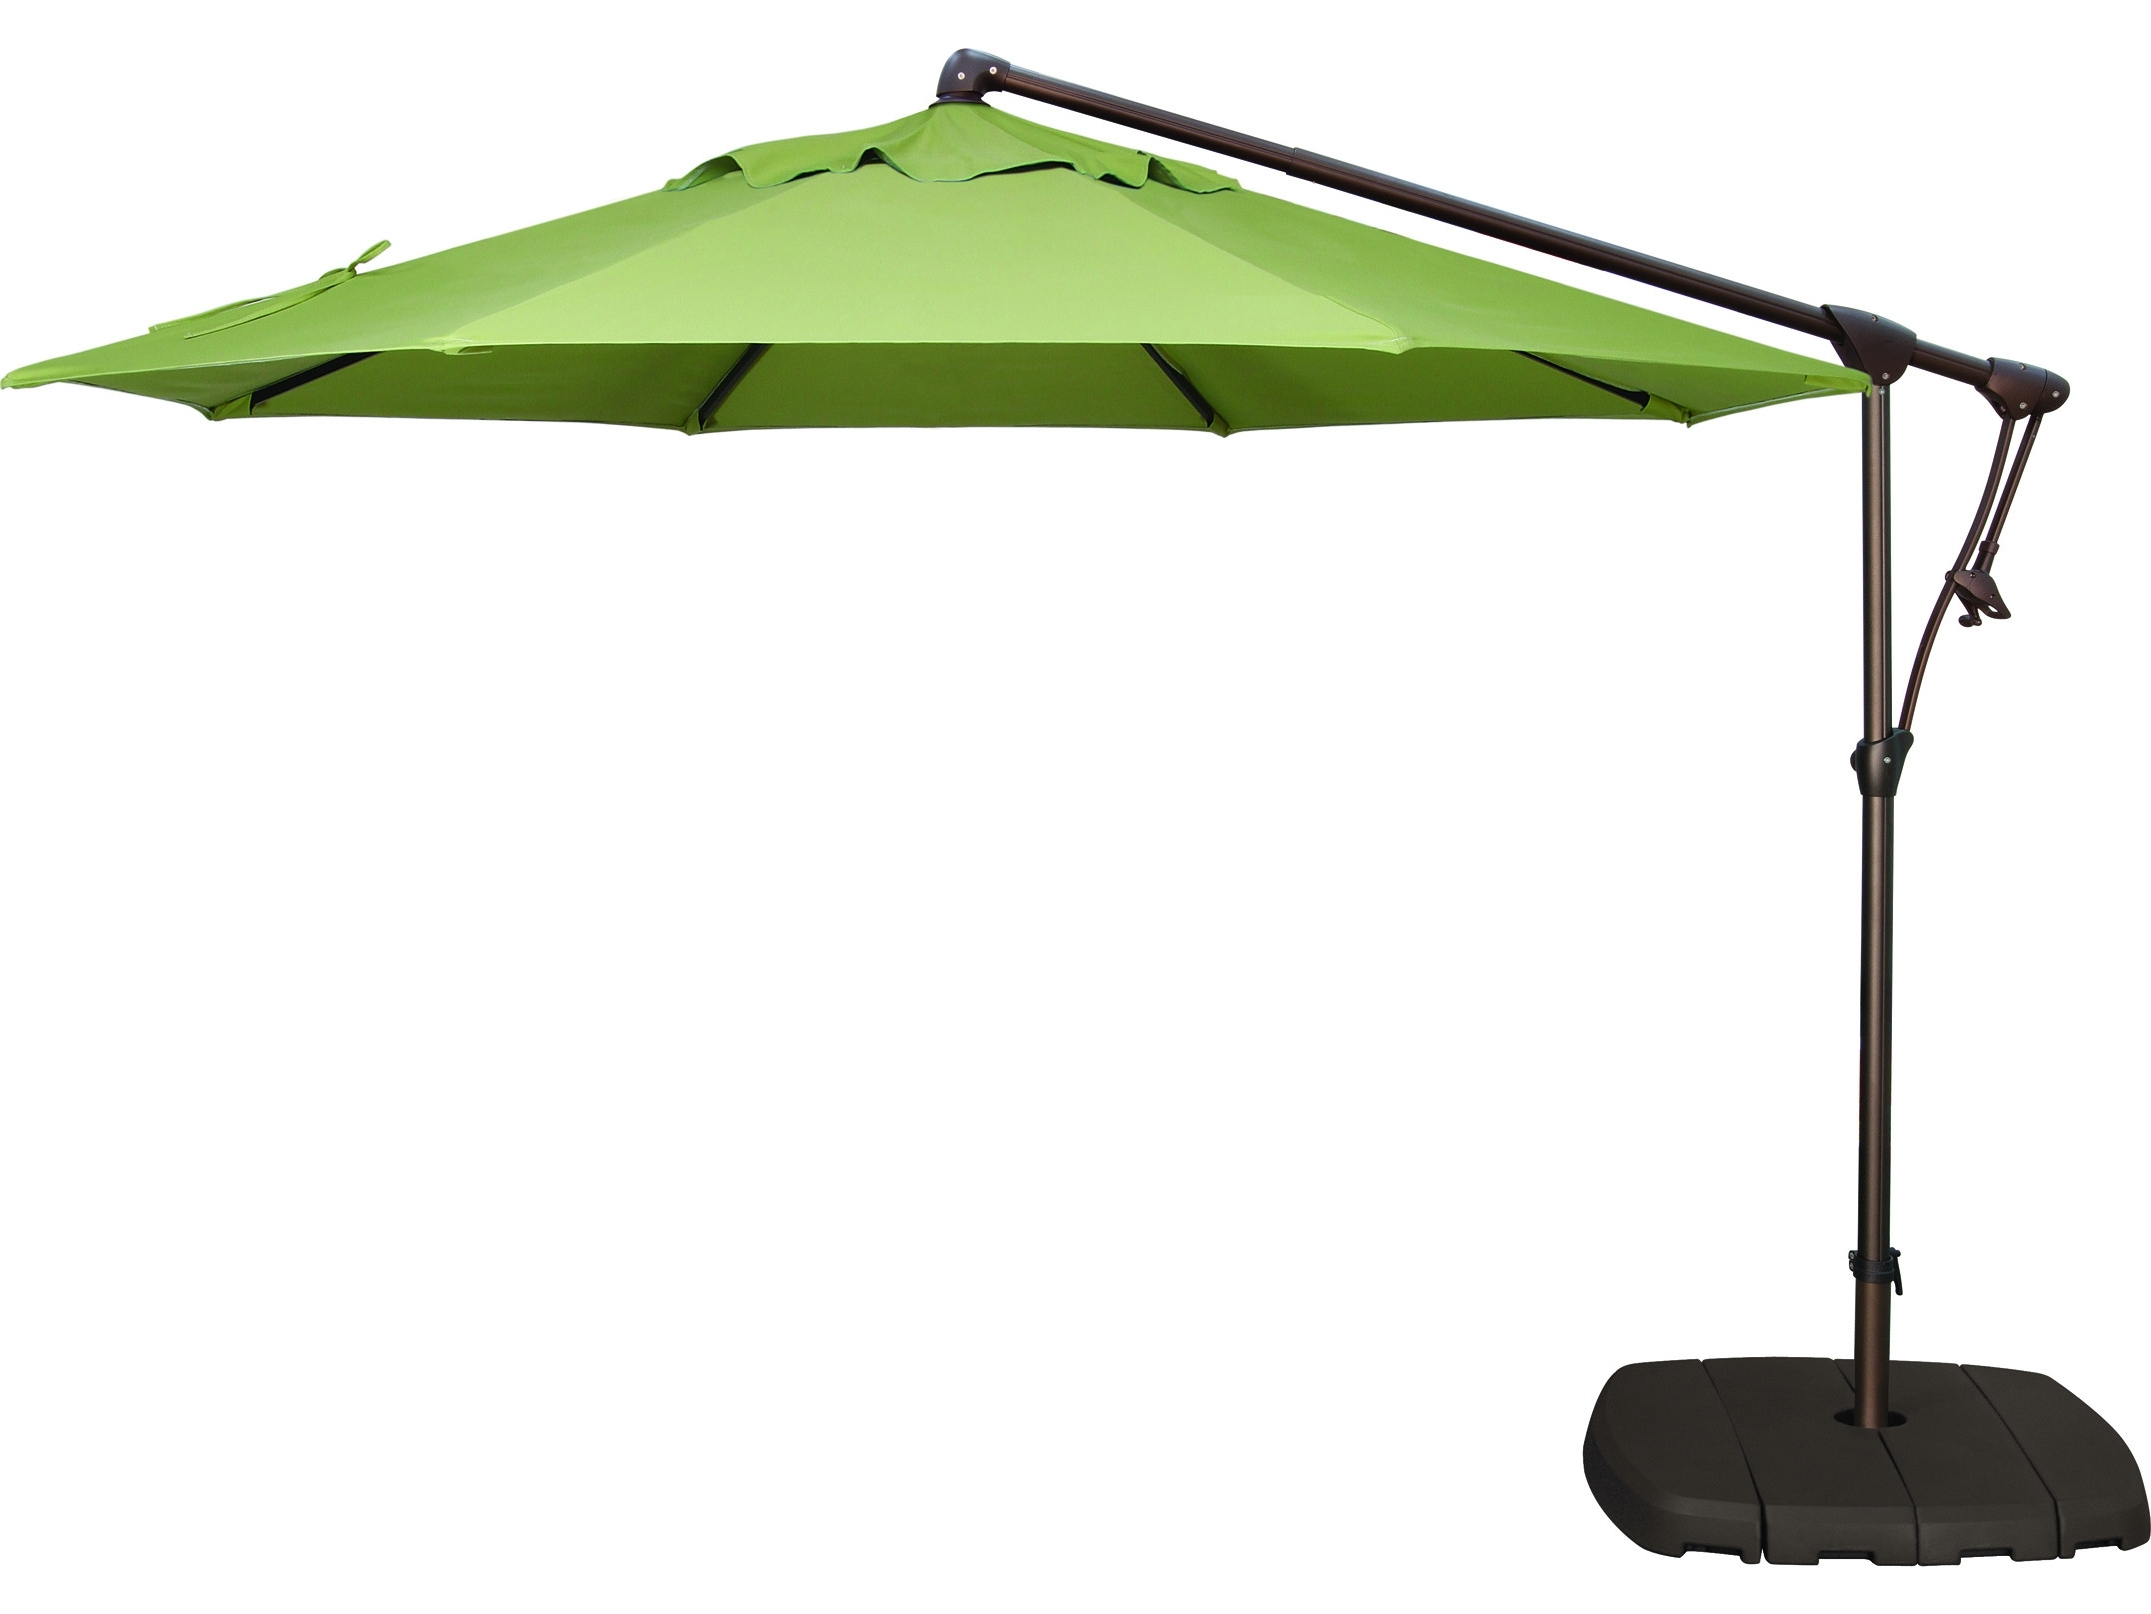 Patio Umbrella Base With Wheels Popular Metal Patio Umbrellas With Regarding Popular Patio Umbrellas With Wheels (View 10 of 20)